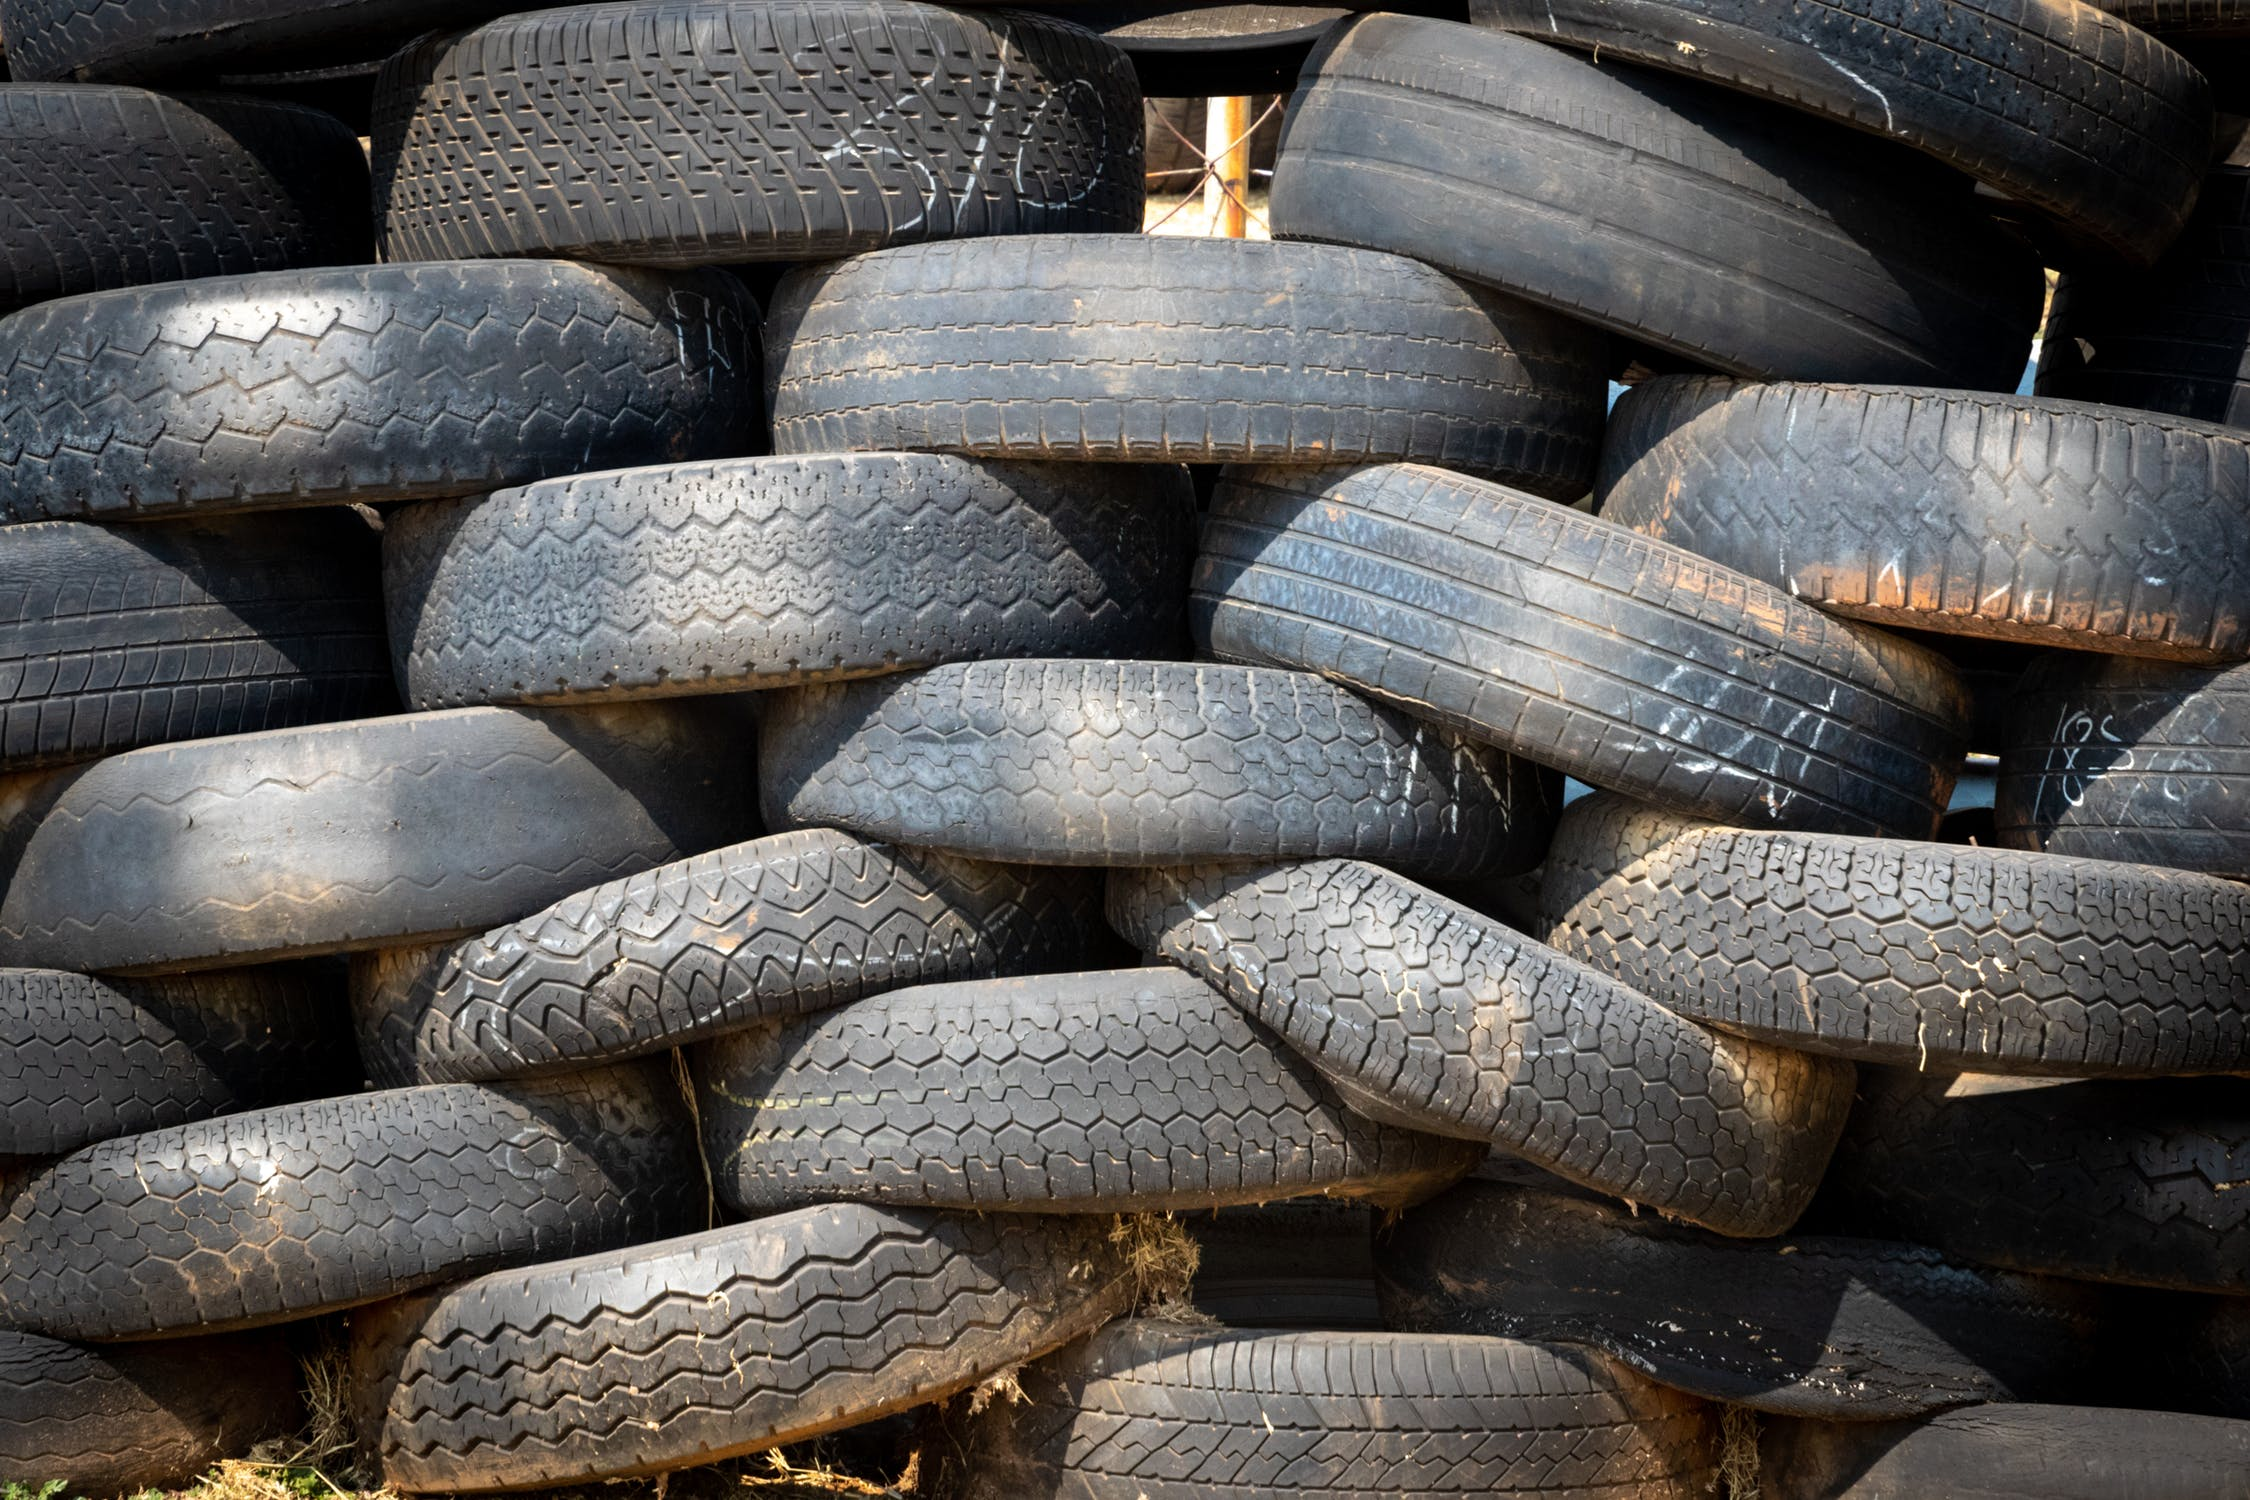 How To Sell Used Tires: The End-To-End Guide (Updated 2021)